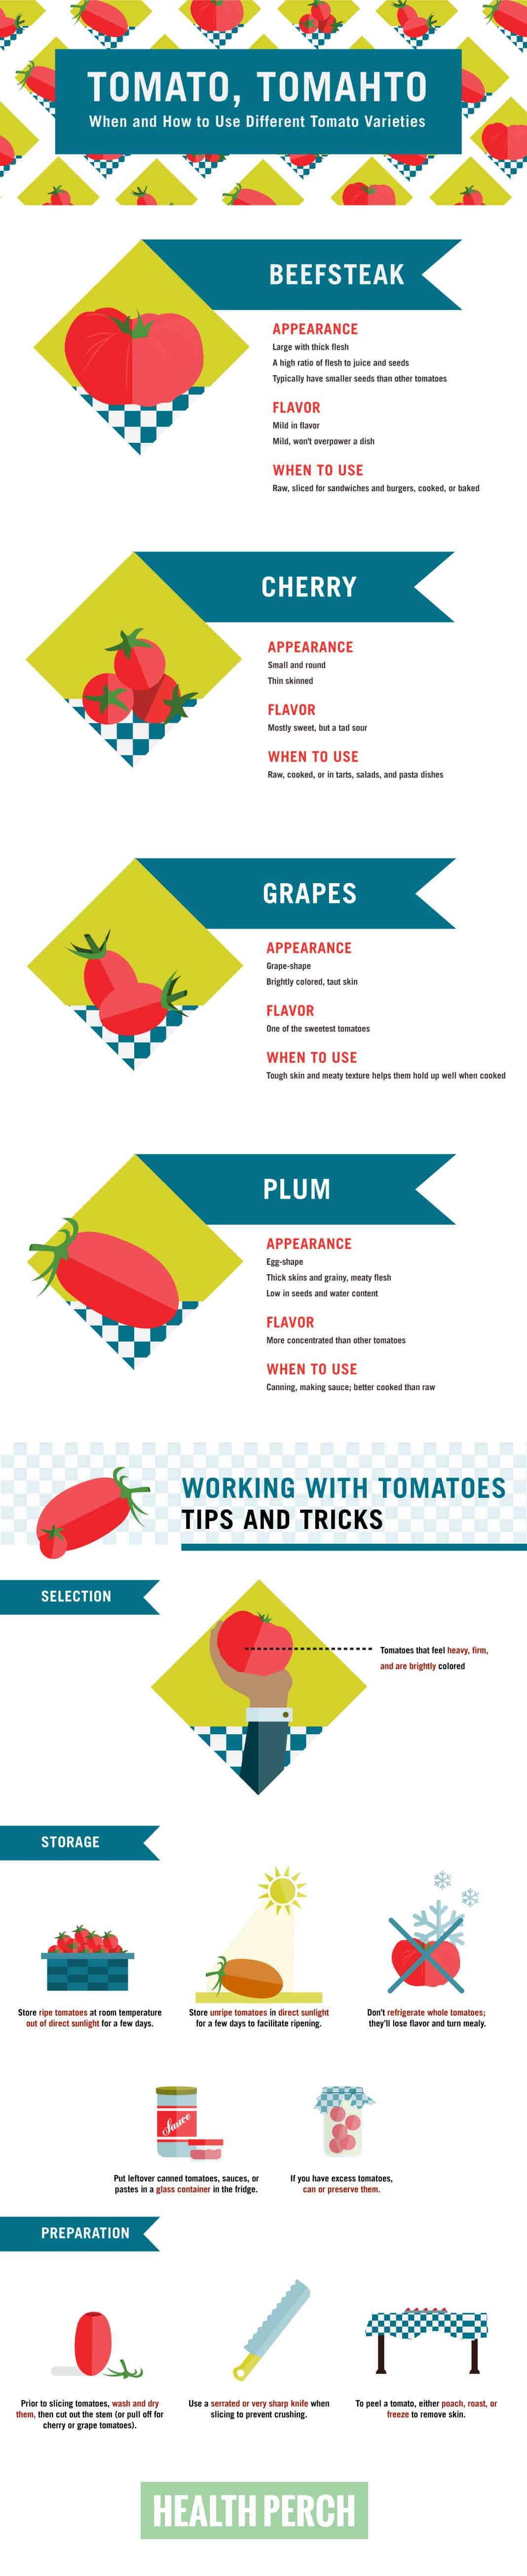 Tomato, Tomahto: When and How to Use Different Tomato Varieties infographic from the article: Canning Tomato Sauce: Peel and Process Using a Food Mill | A Domestic Wildflower click to read the recipe and watch the canning tutorial video and see how easy canning can be!